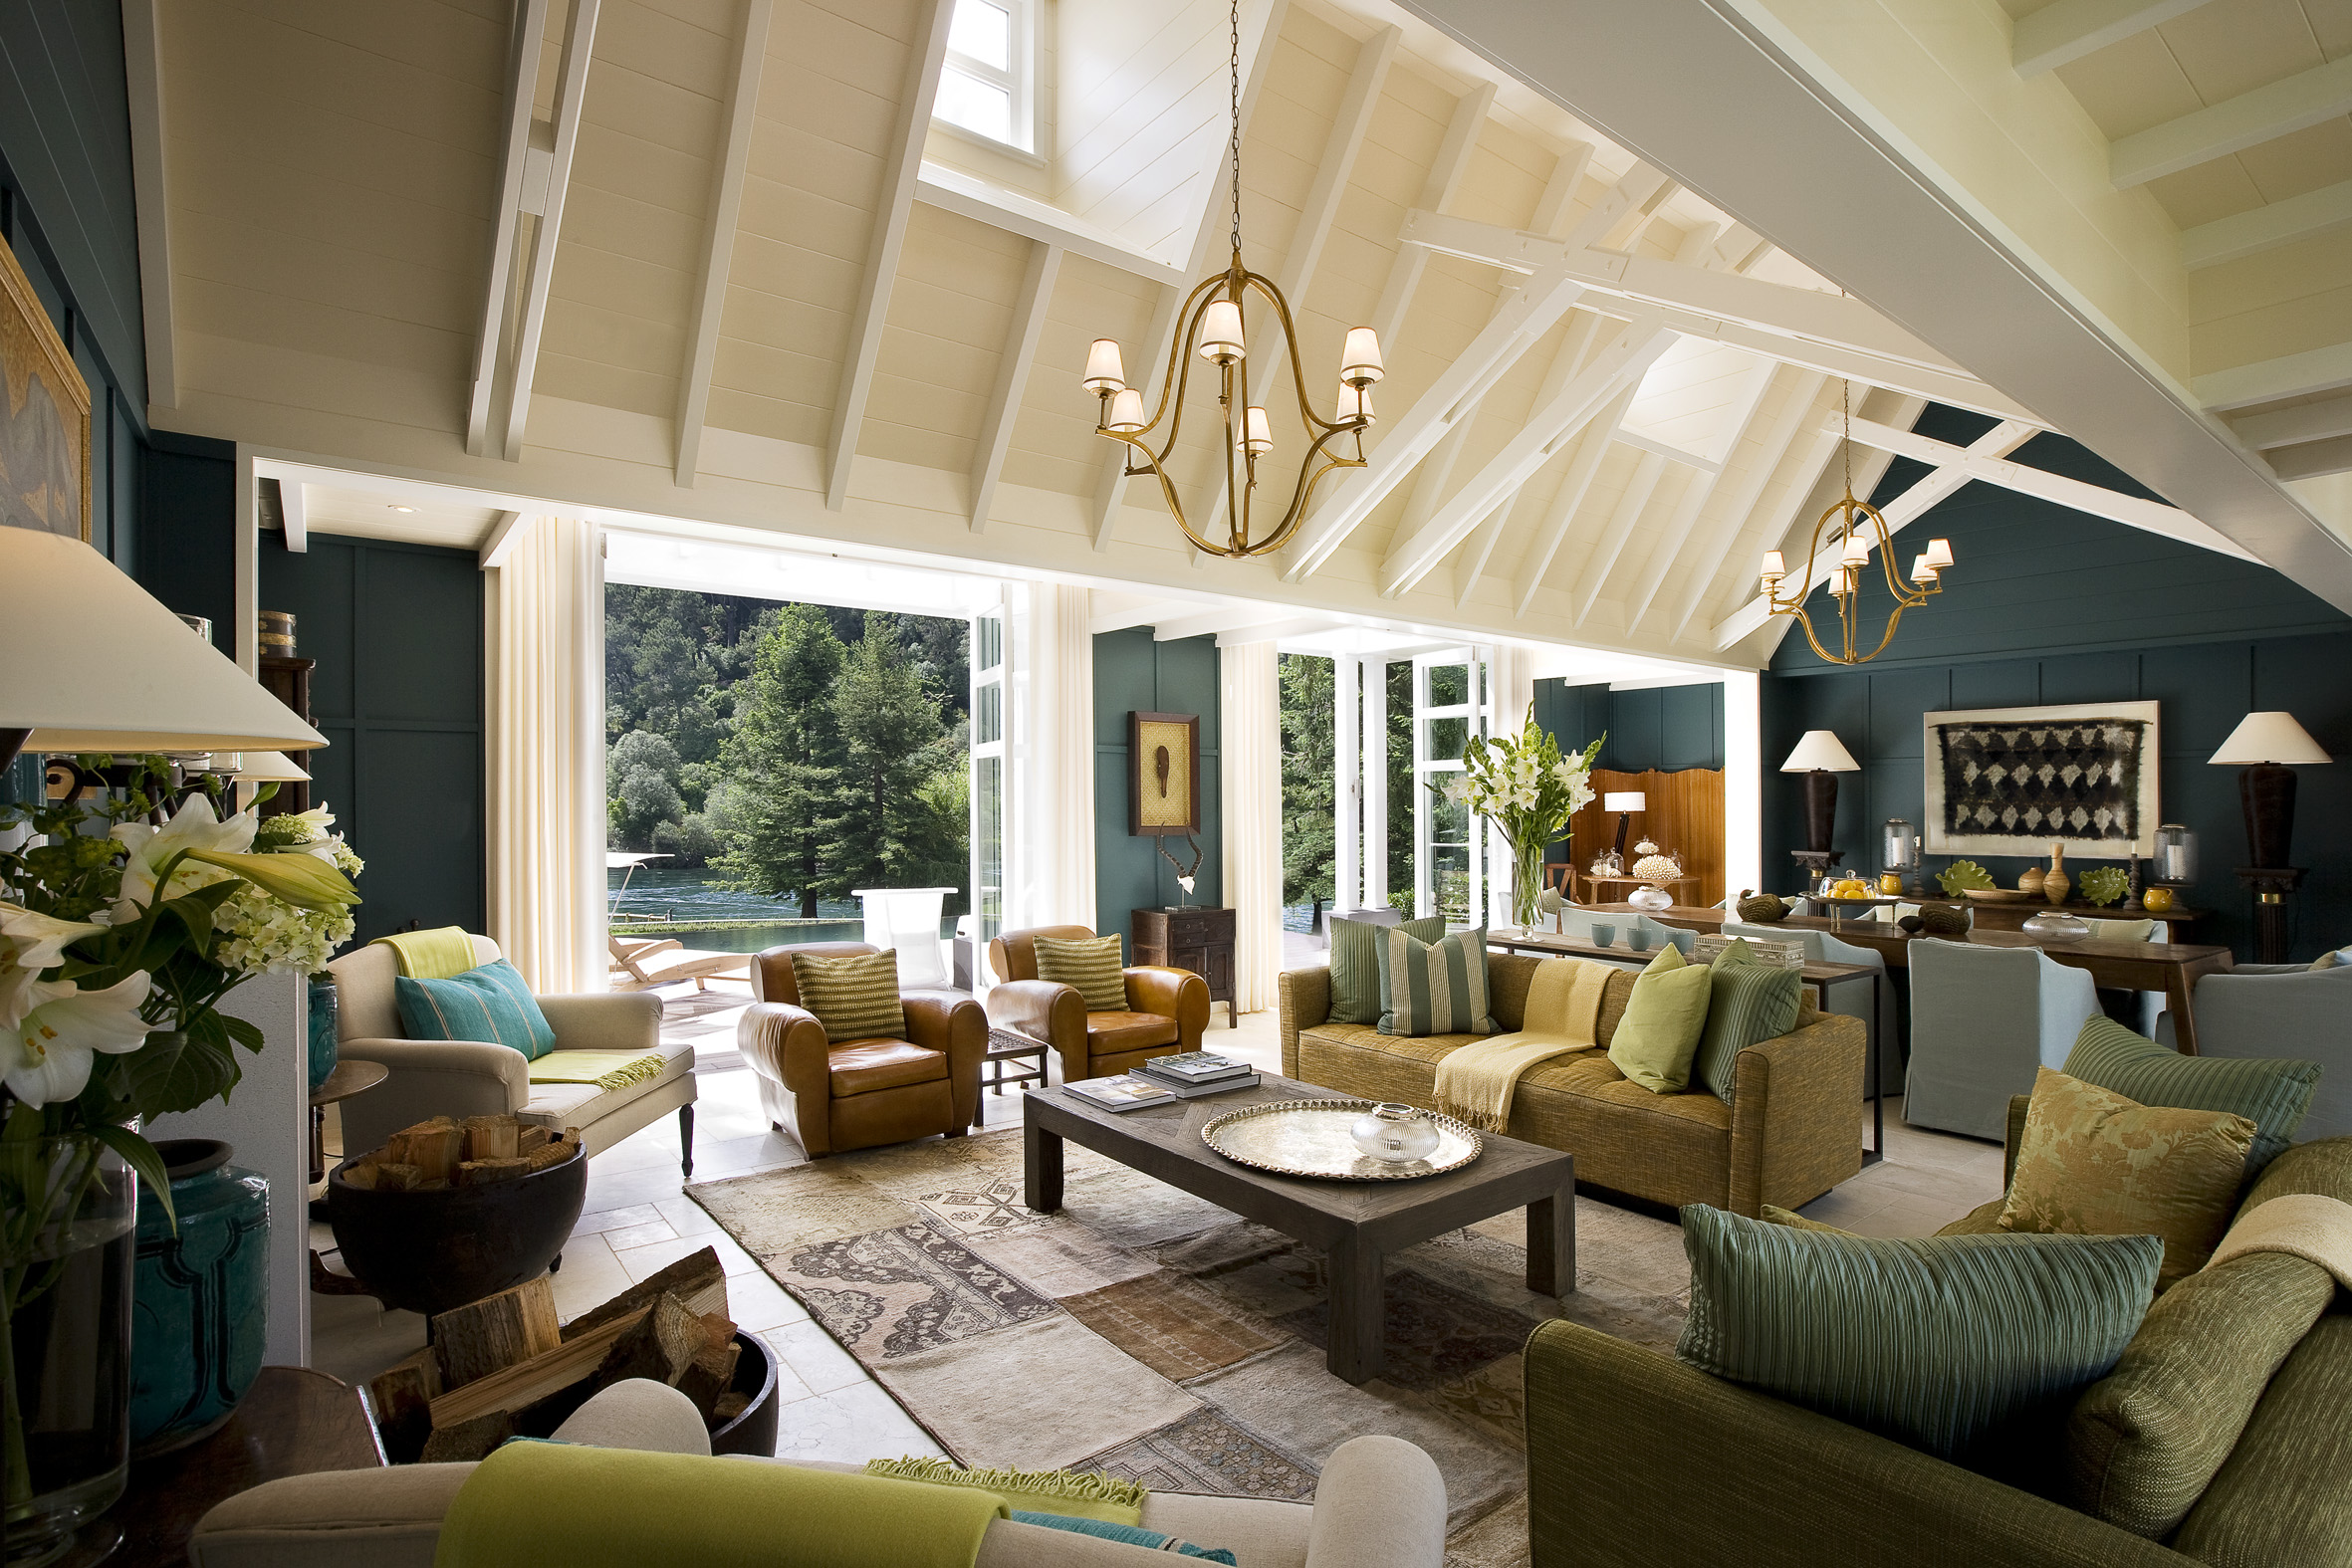 Escape at the huka lodge in new zealand blog purentonline for Luxury home design nz